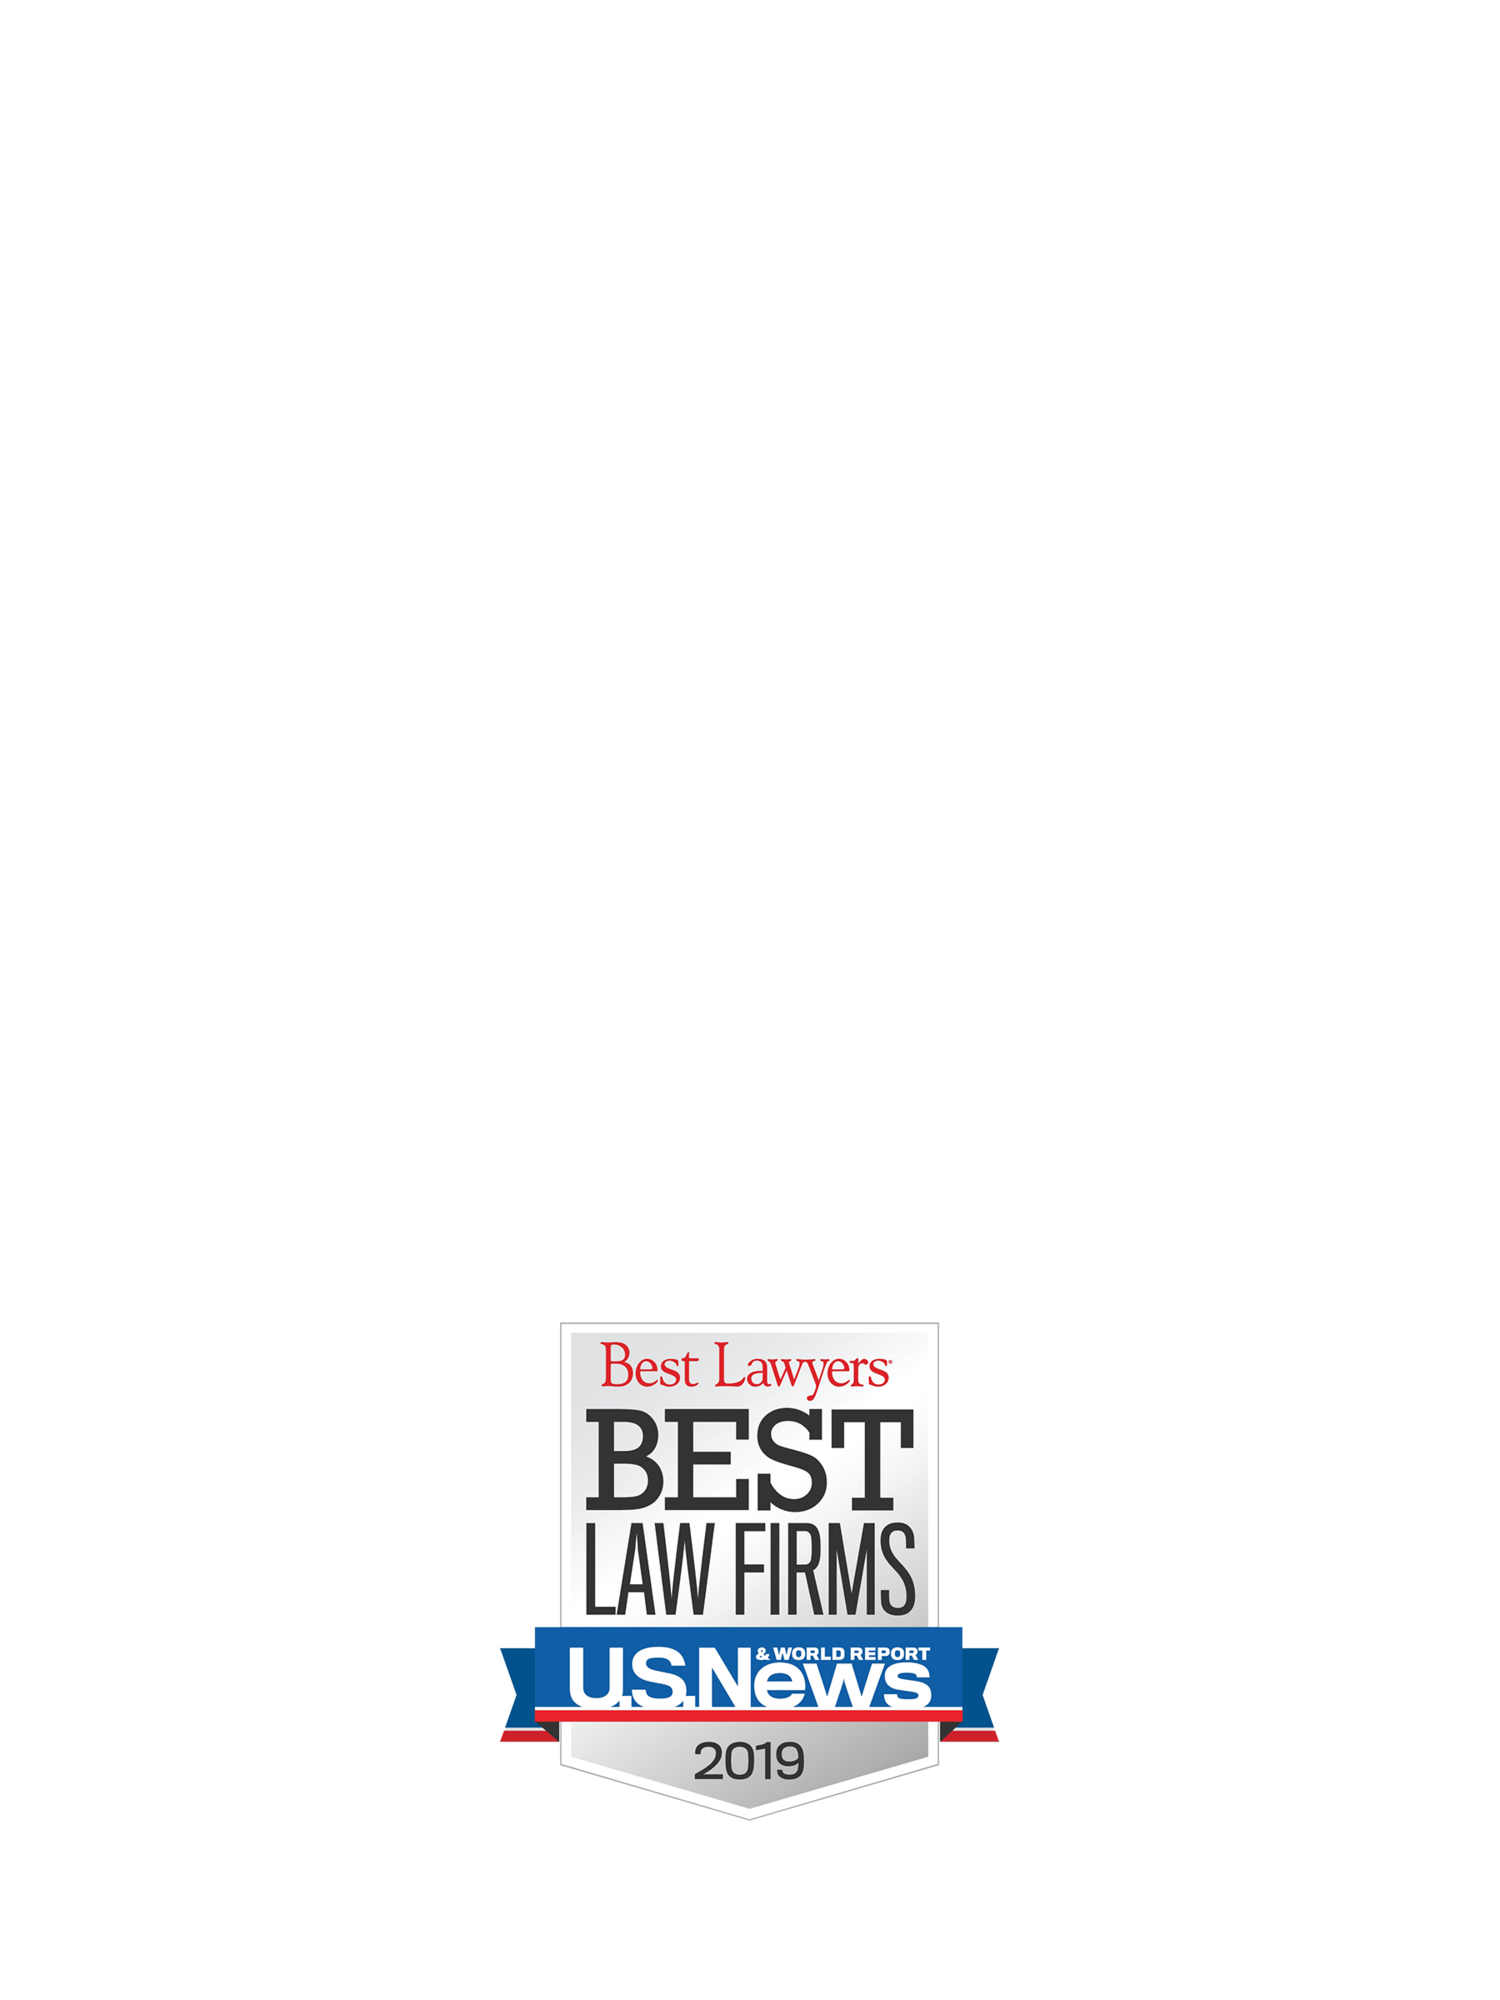 Colin H. Dunn, LLC